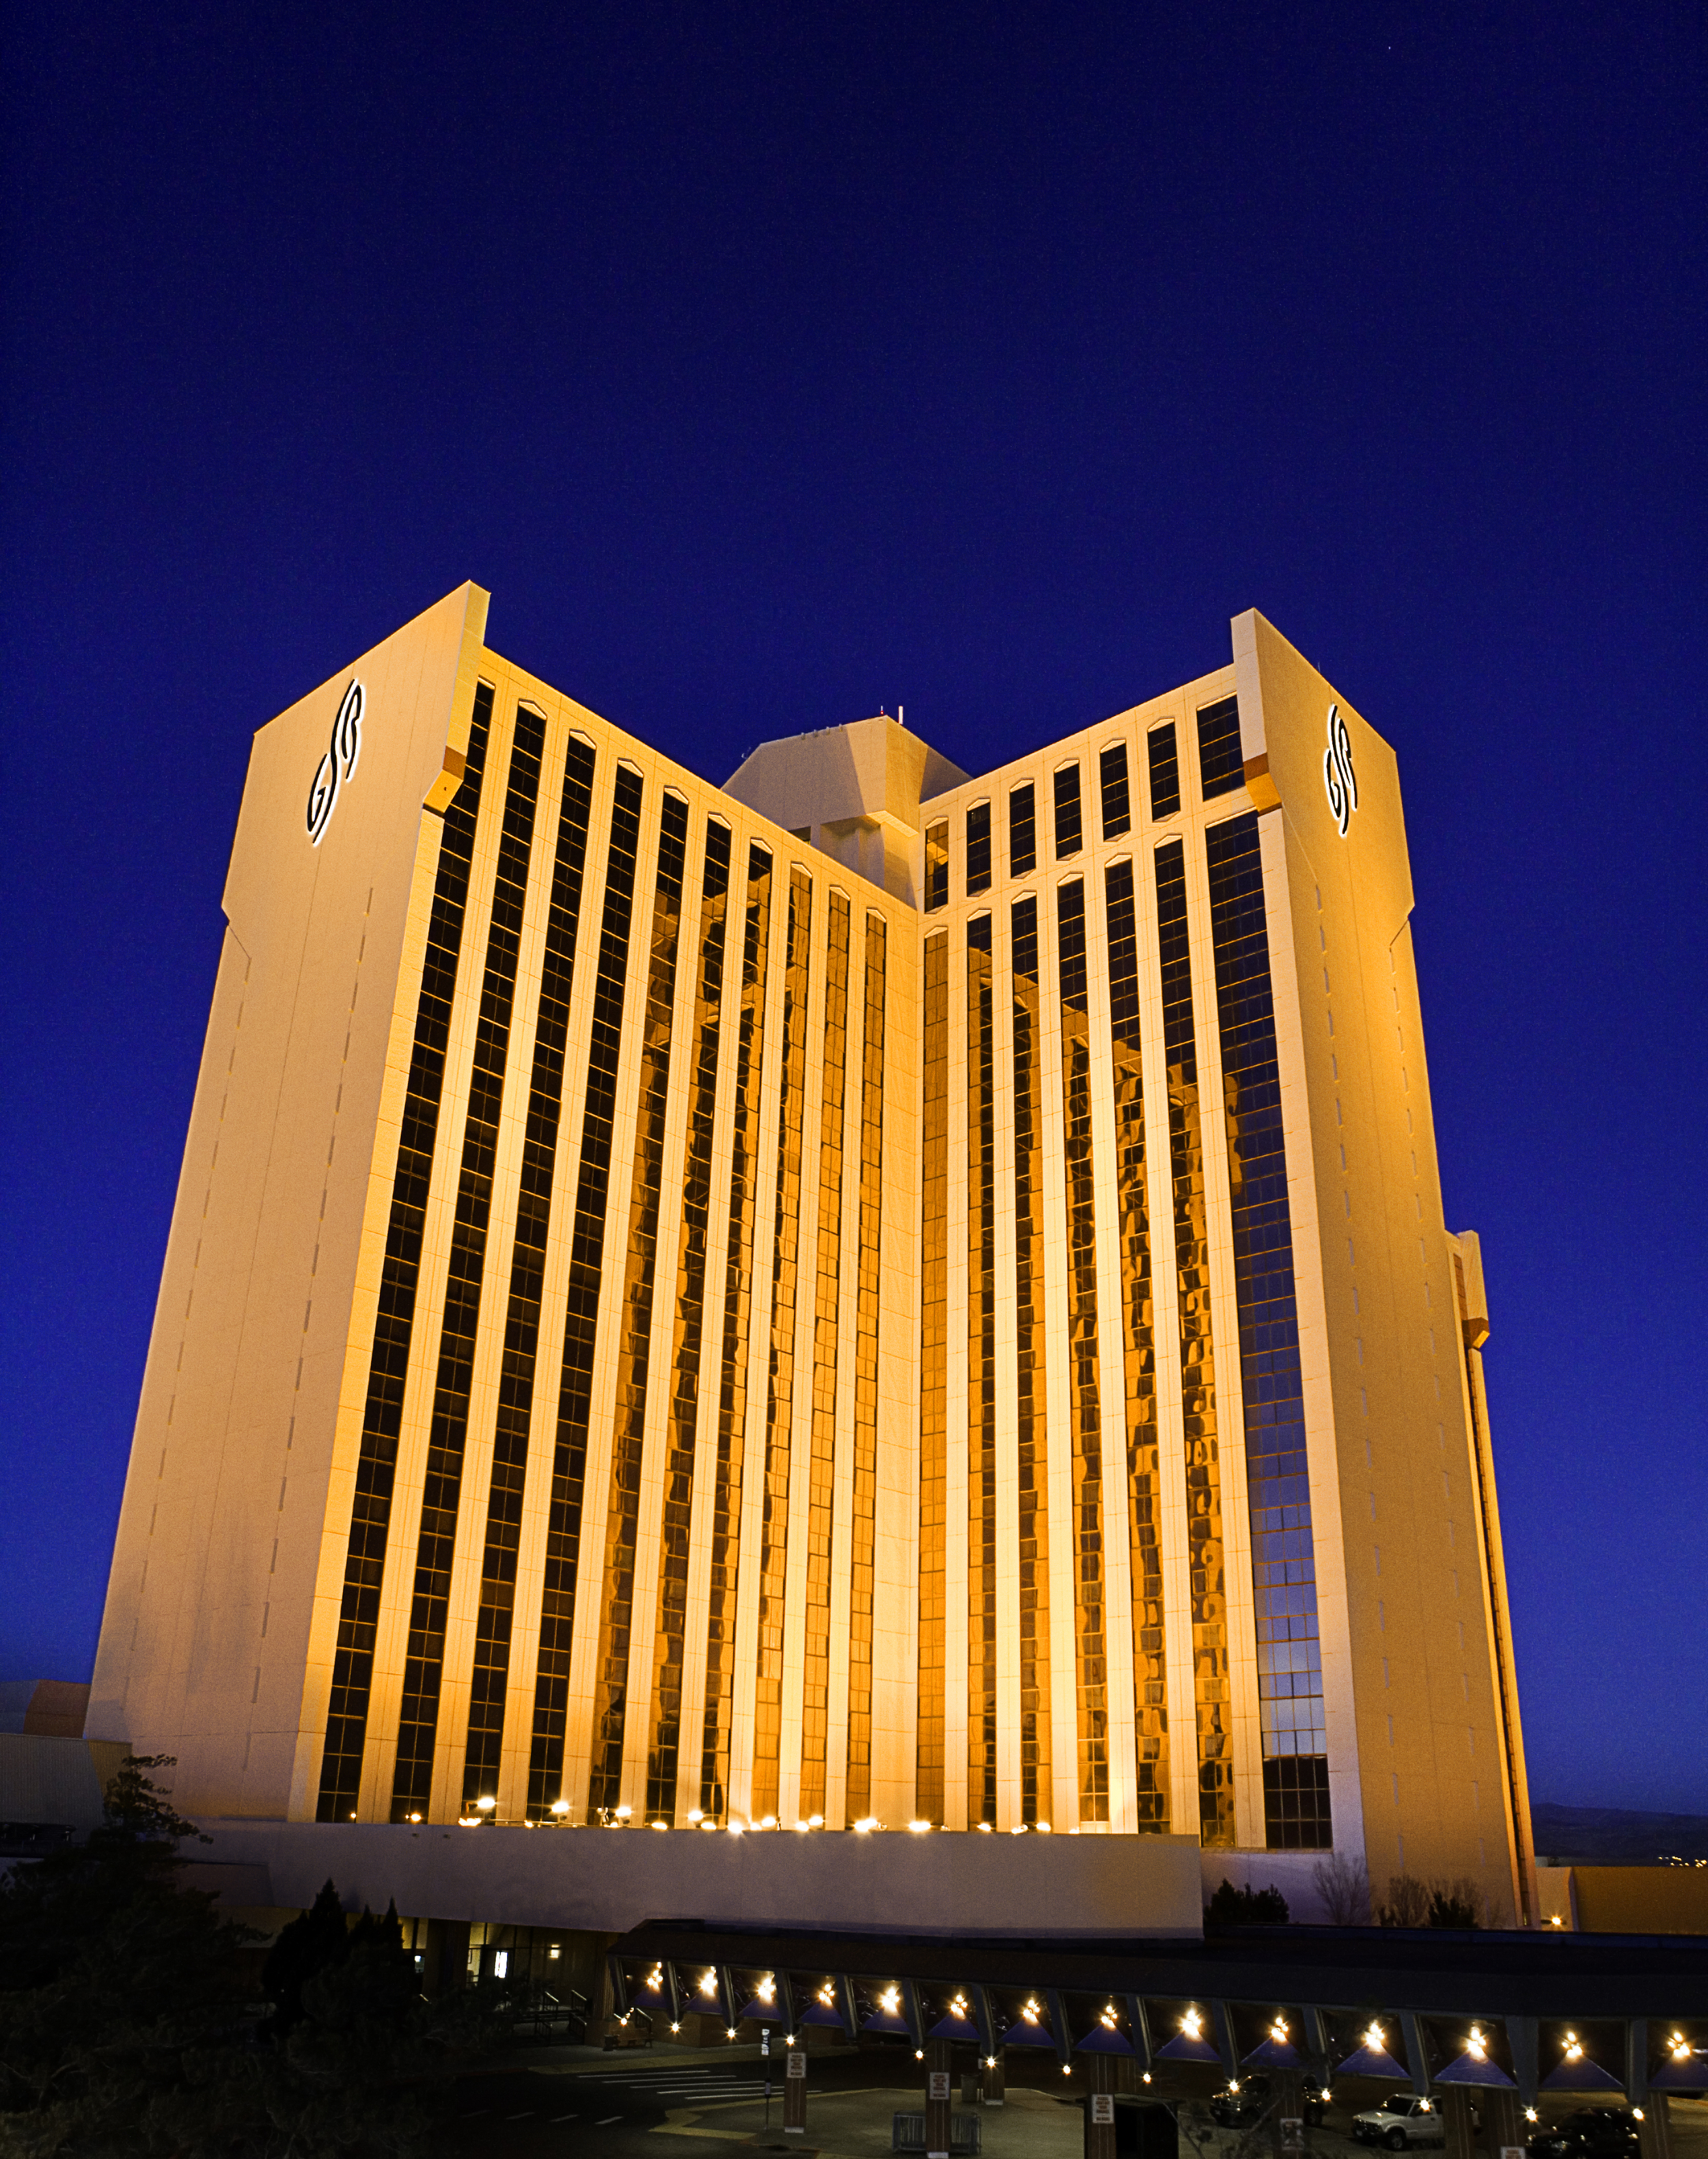 Night time outside view of a 26 Story Hotel/Casino in Reno, NV